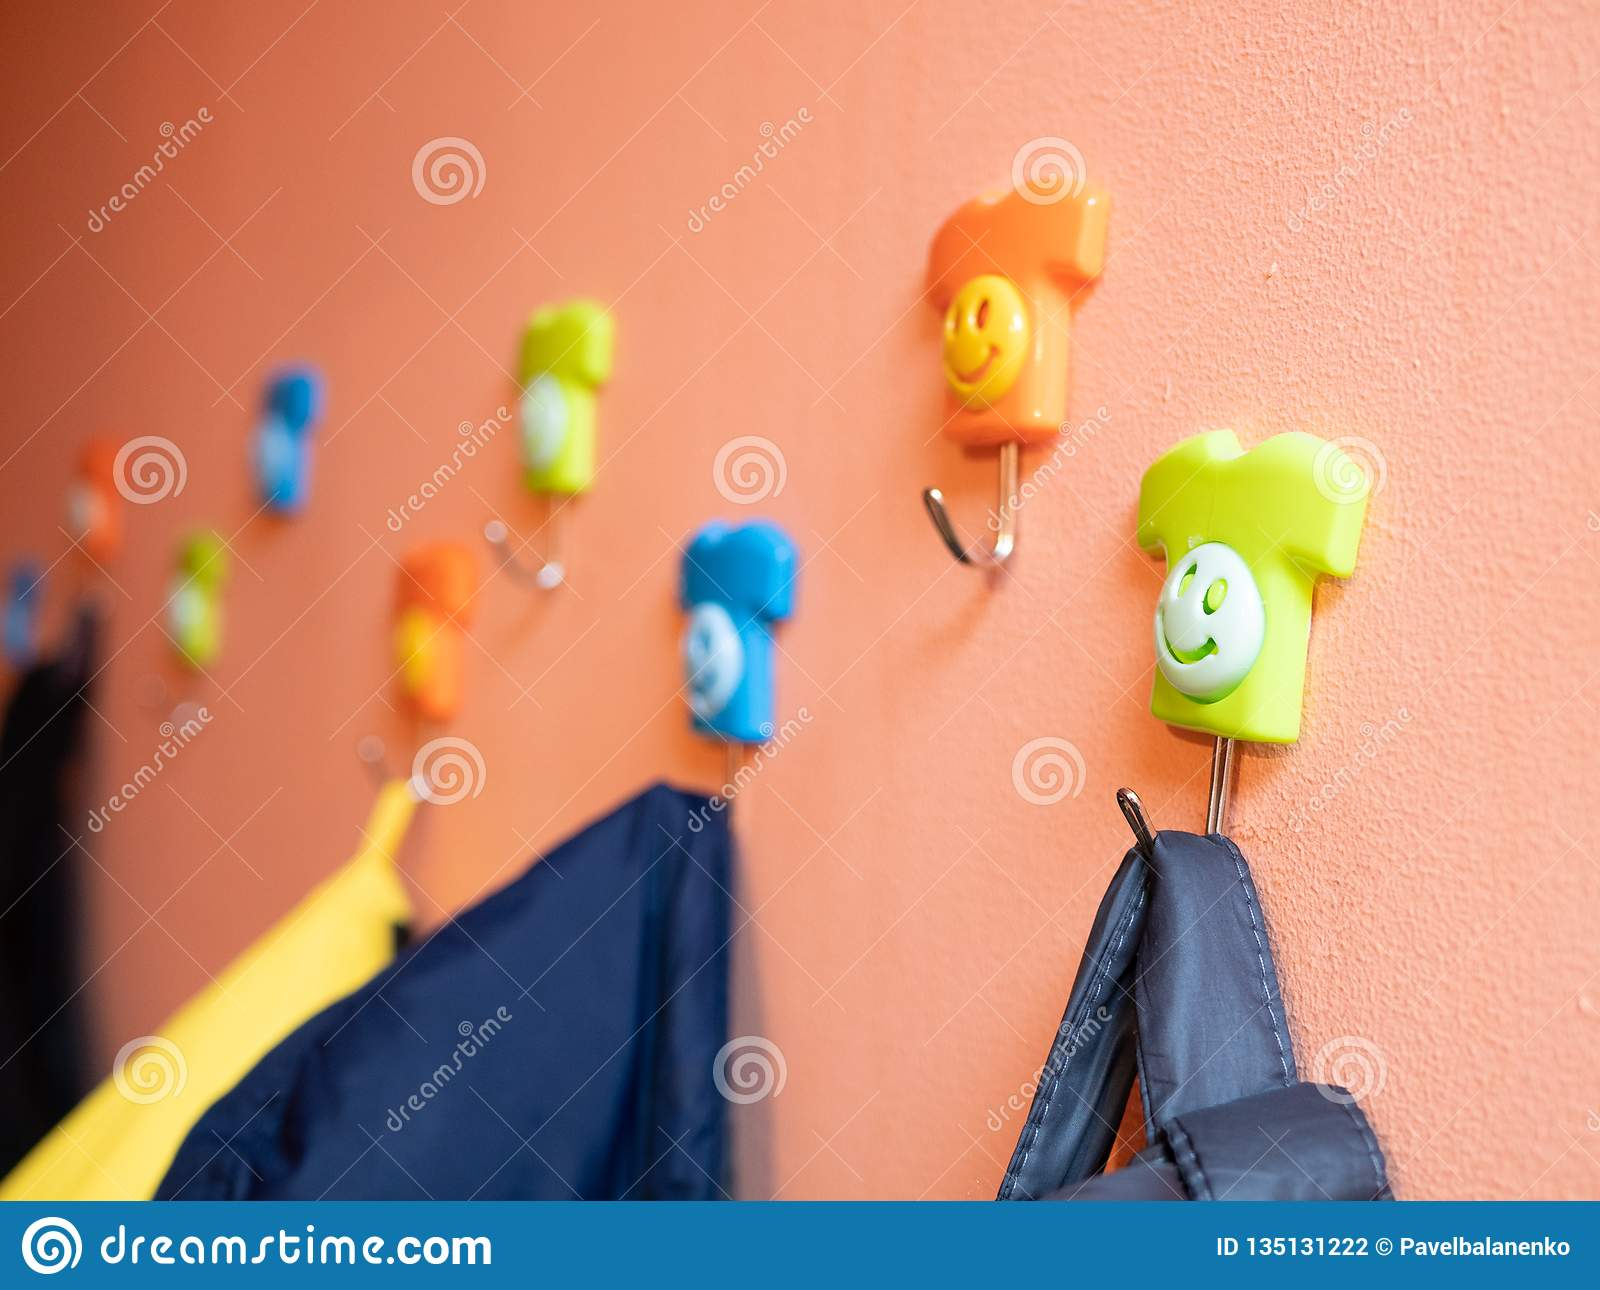 Funny Colored Hangers For Apparel On Wall Stock Photo Image Of Baby Cute 135131222